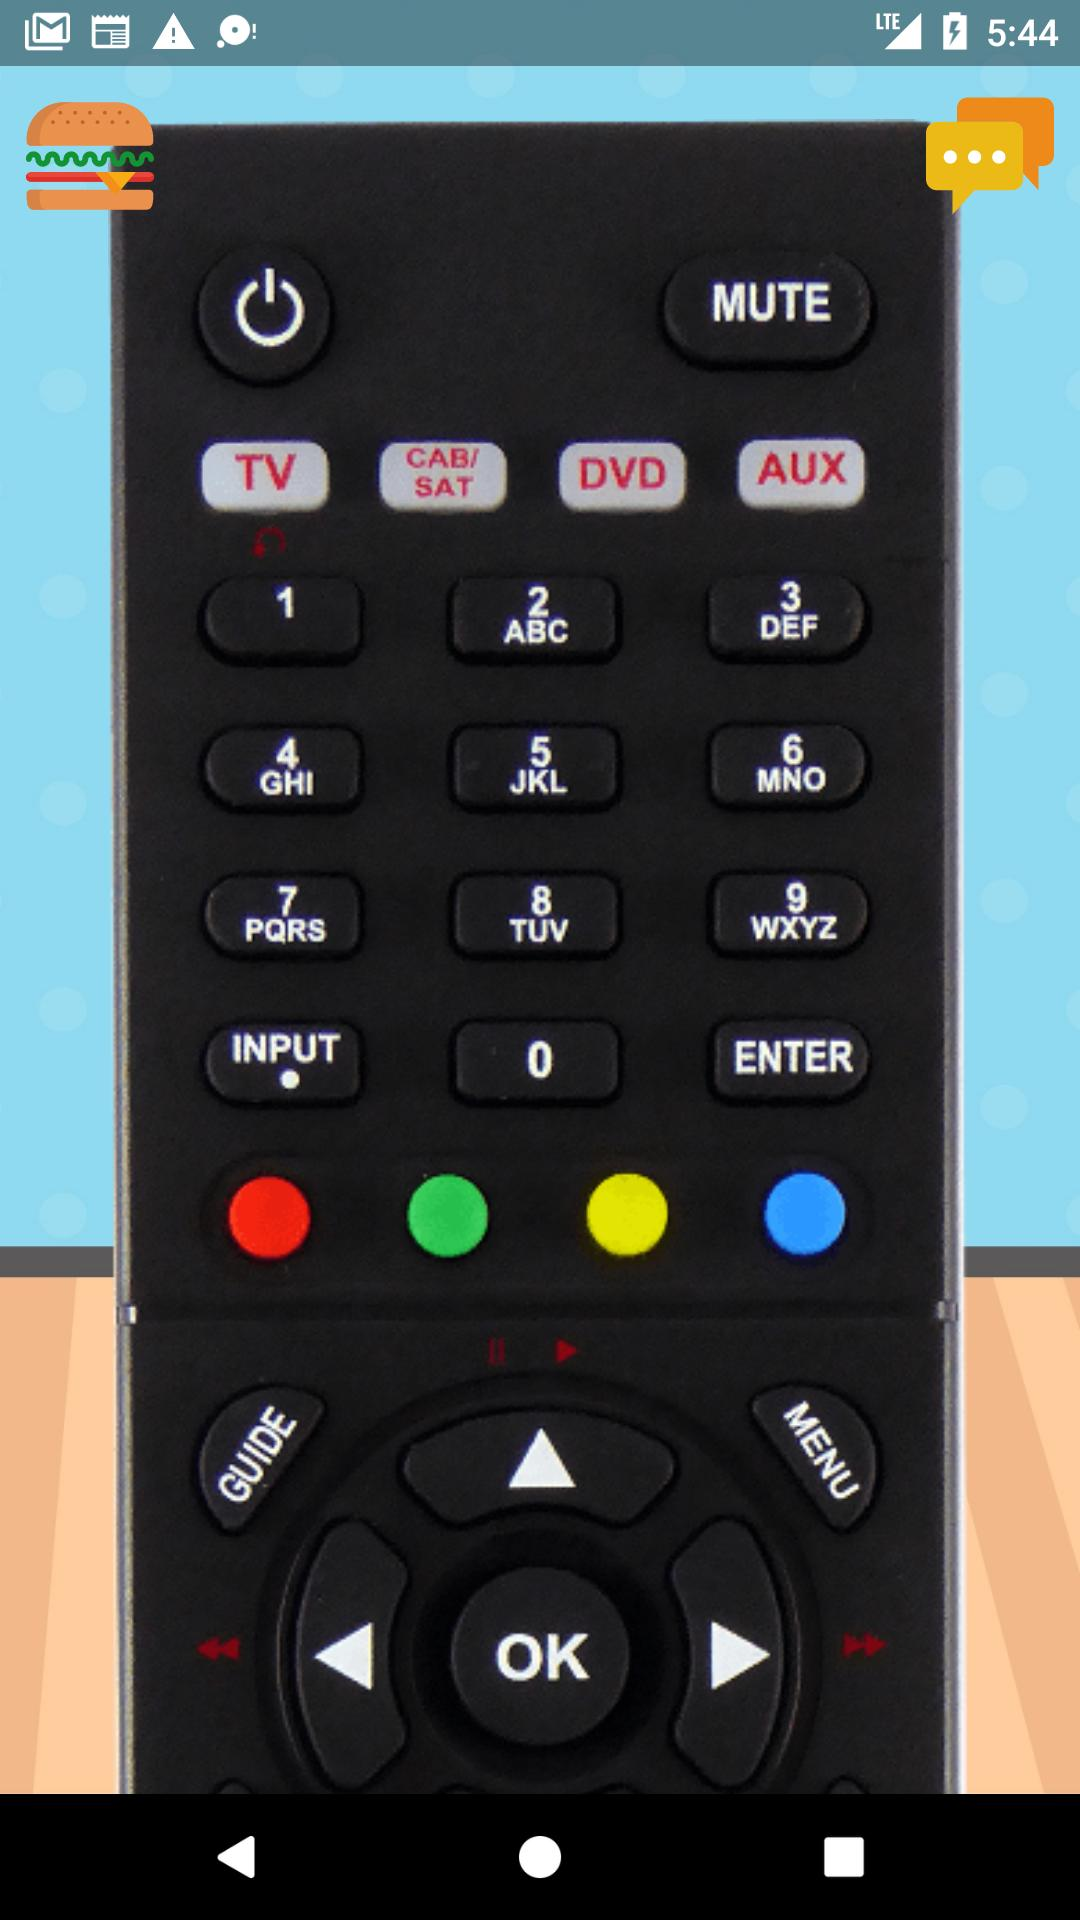 Remote Control For Polaroid TV for Android - APK Download